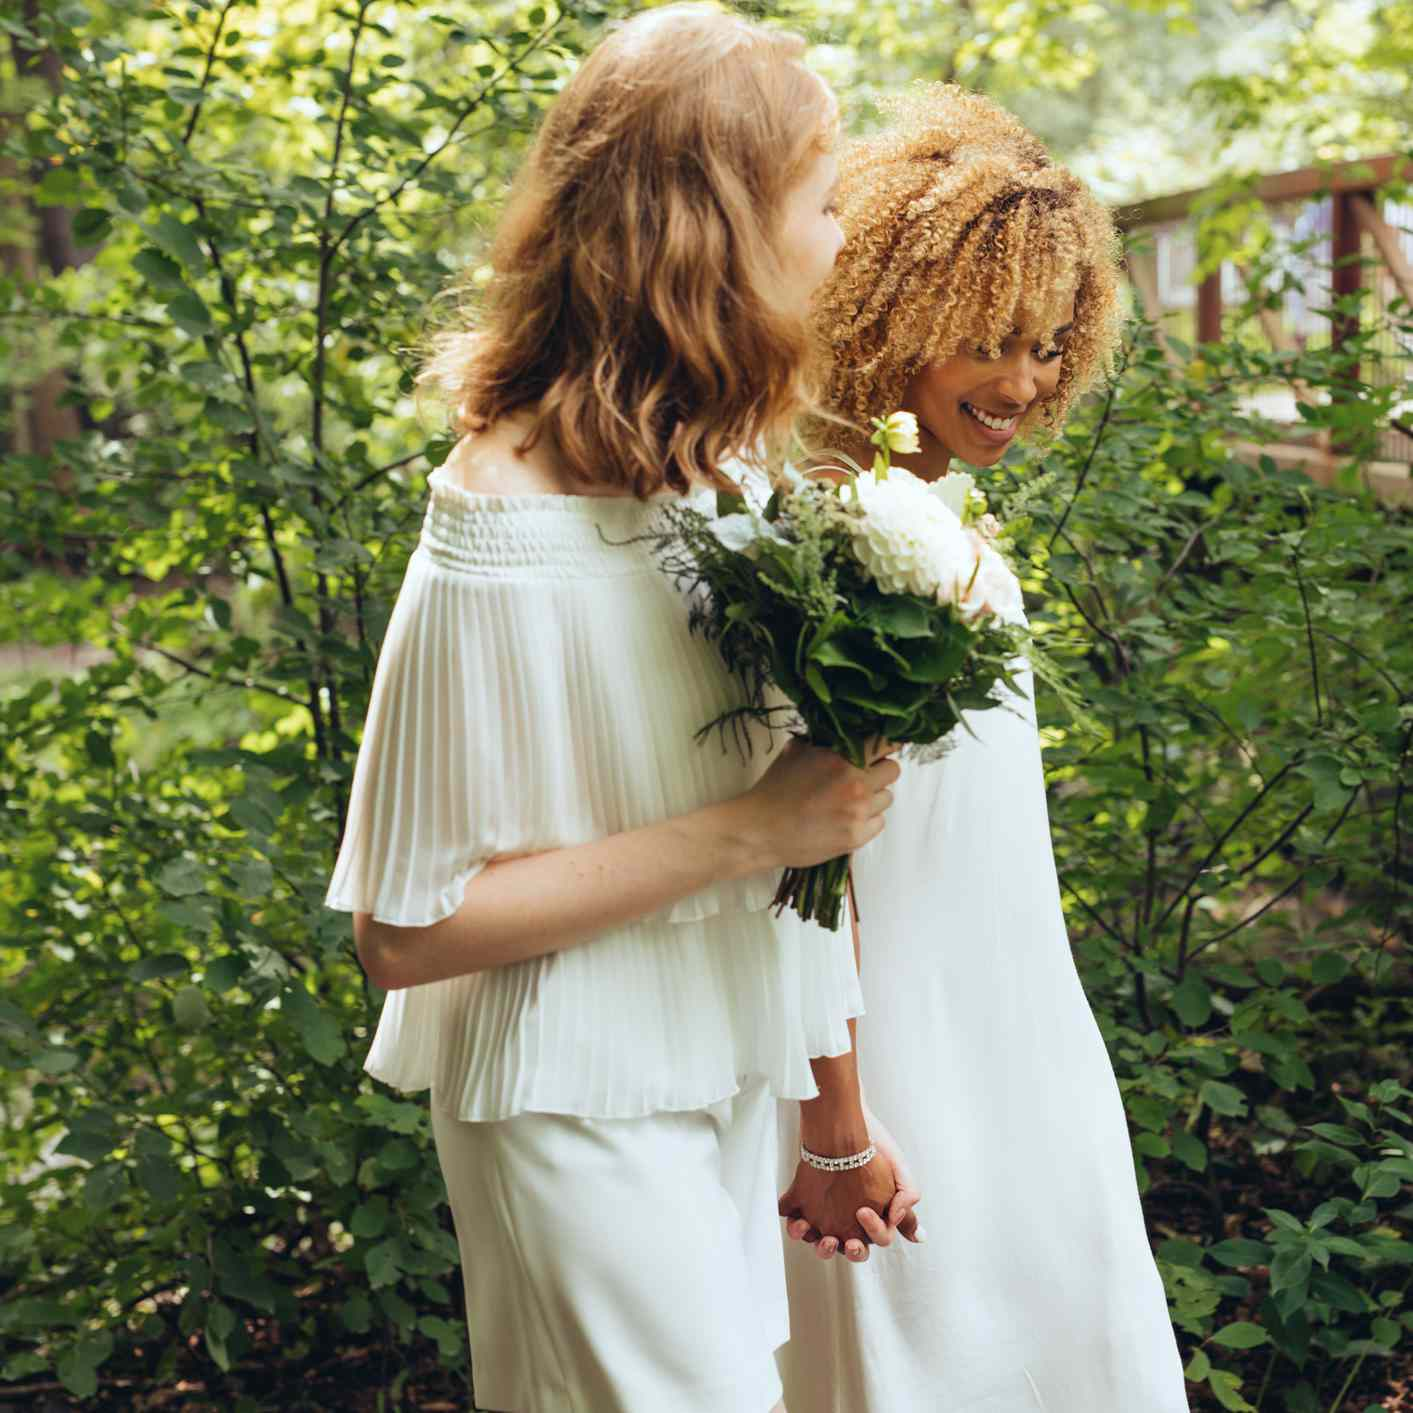 8 Lesbian Couples Share Their Adorable (and Unlikely!) Love Stories